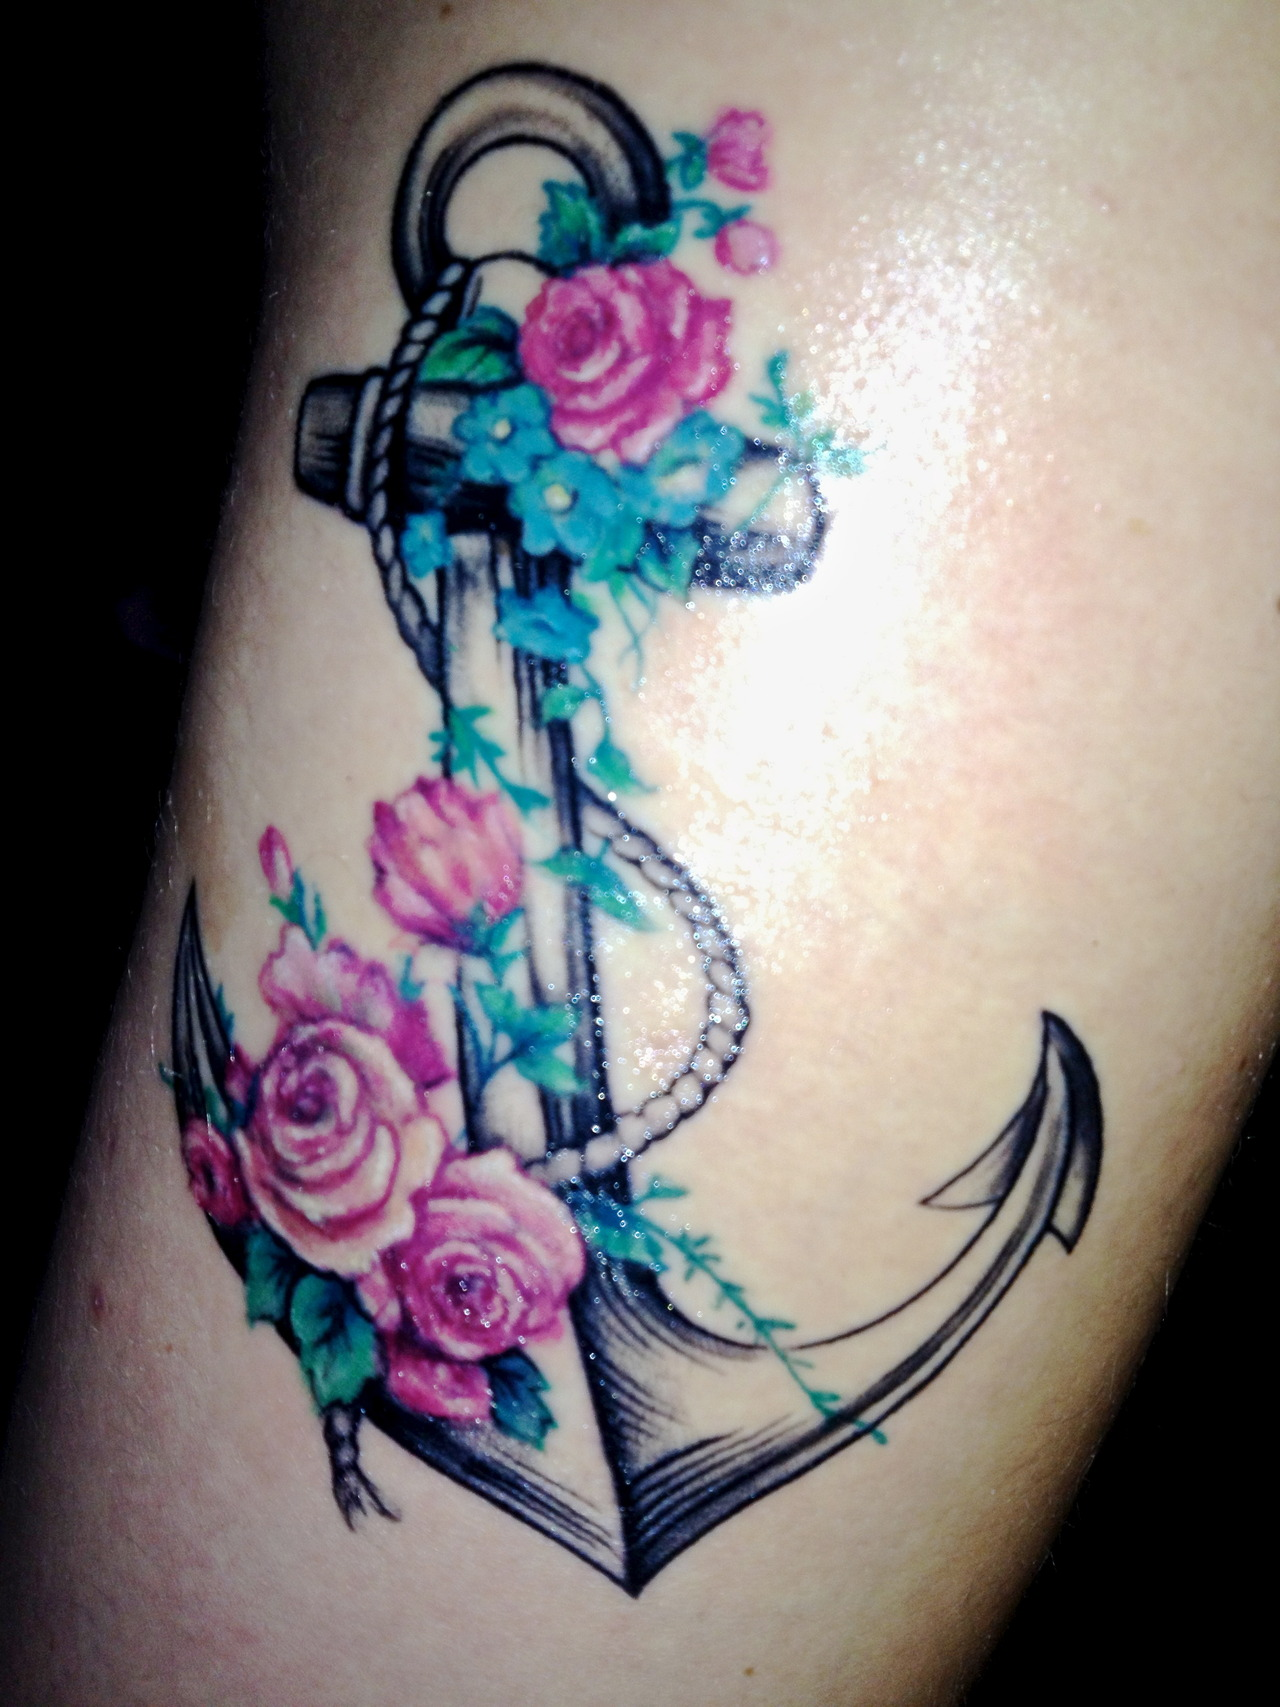 Tattoo Designs Of Anchors